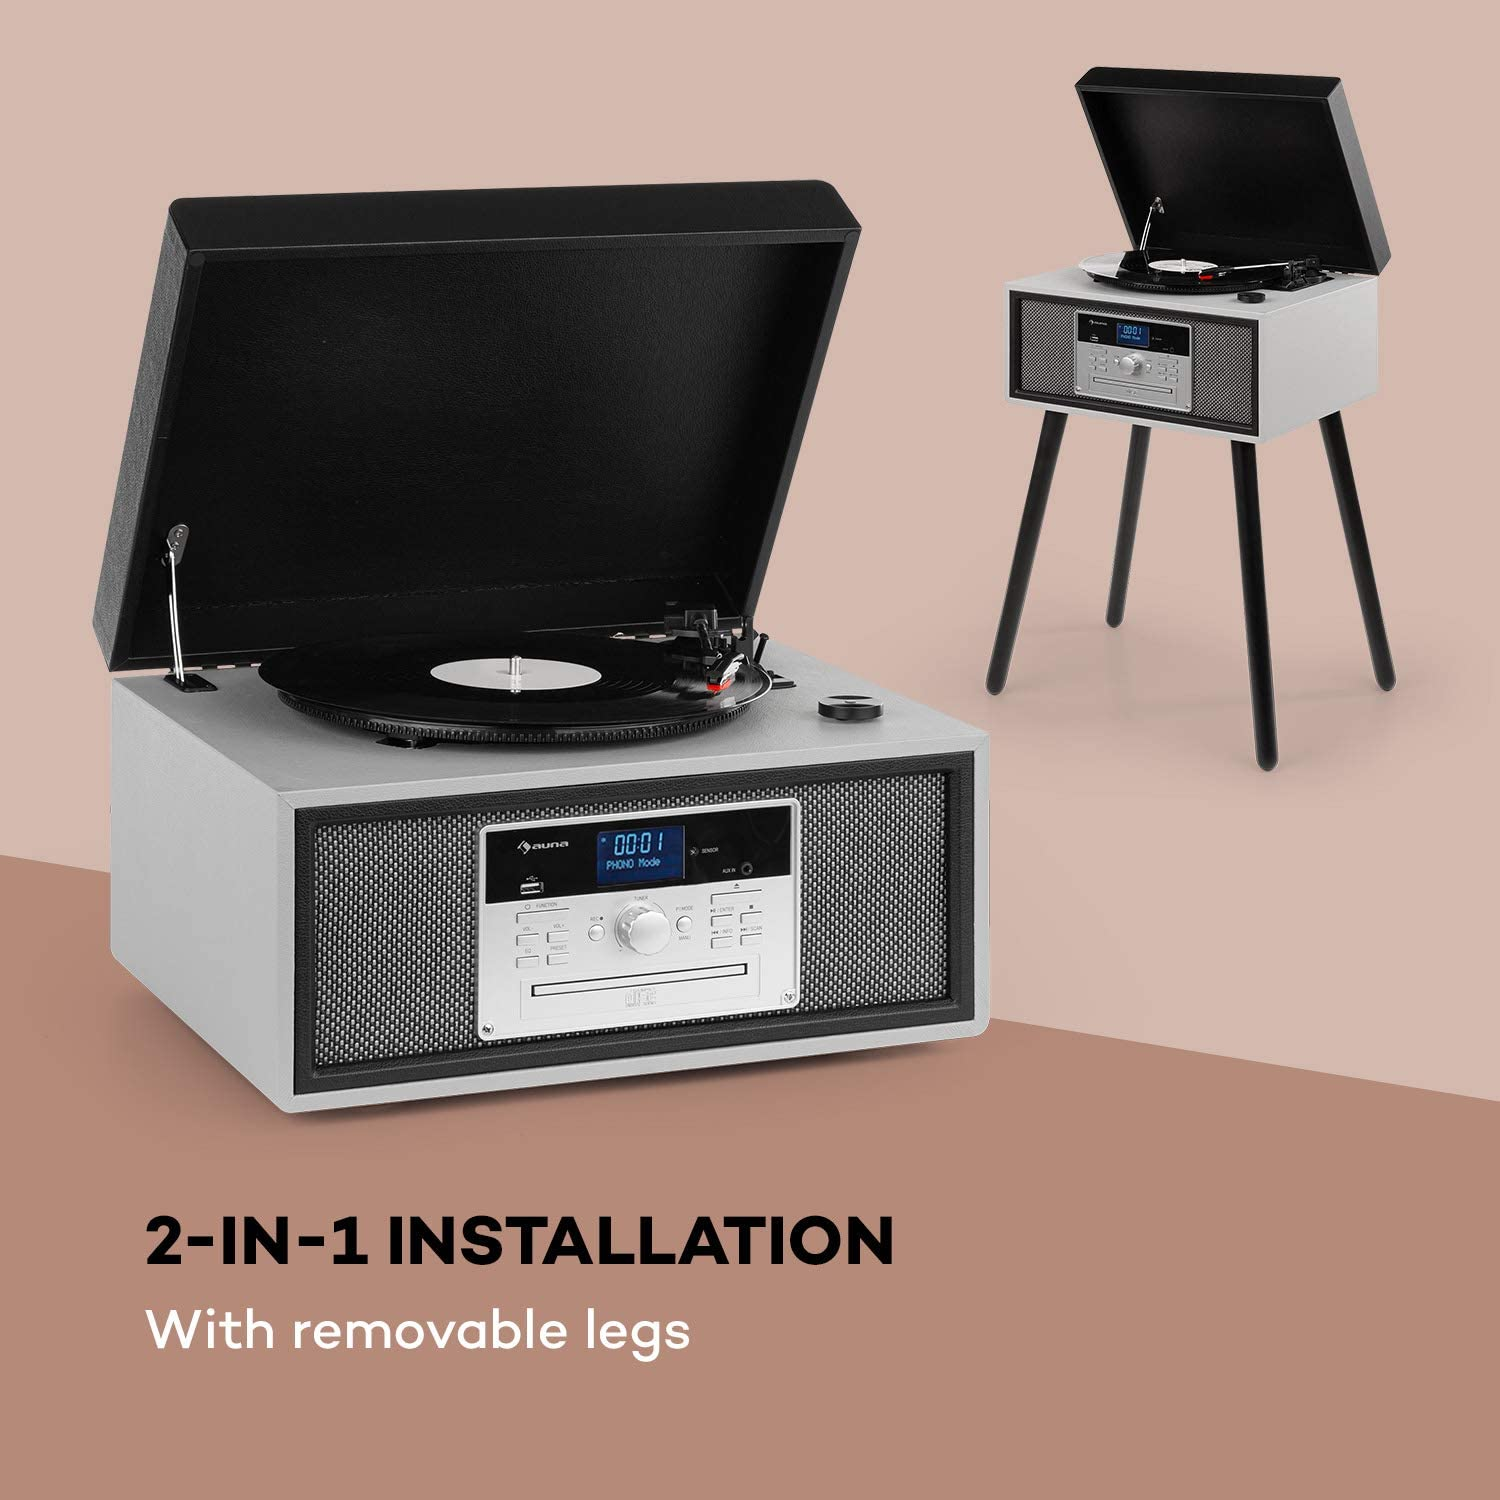 AUNA Mary Ann Record Player Retro Turntable DAB Radio 24W Maximum Player Bluetooth Function USB Port Stereo Speakers 20W and rpm Remote Control Black Grey